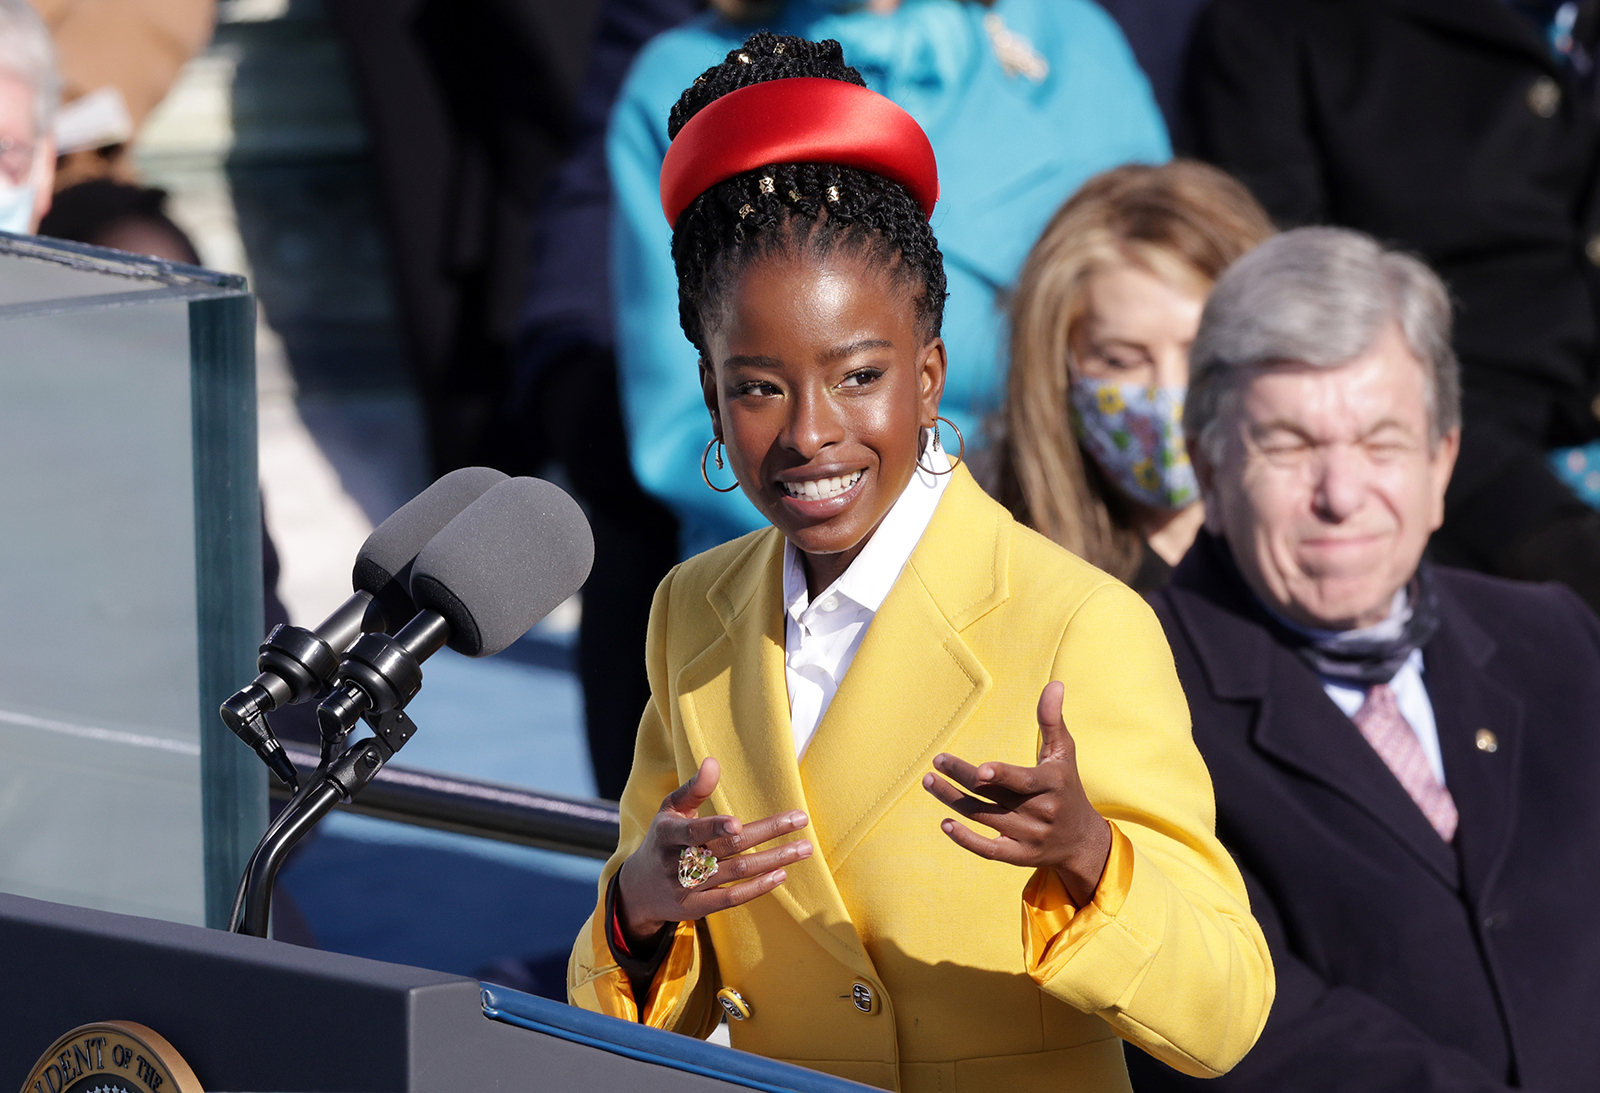 Youth Poet Laureate Amanda Gorman speaks during the inauguration of US President Joe Biden on the West Front of the US Capitol in Washington, DC, on January 20.